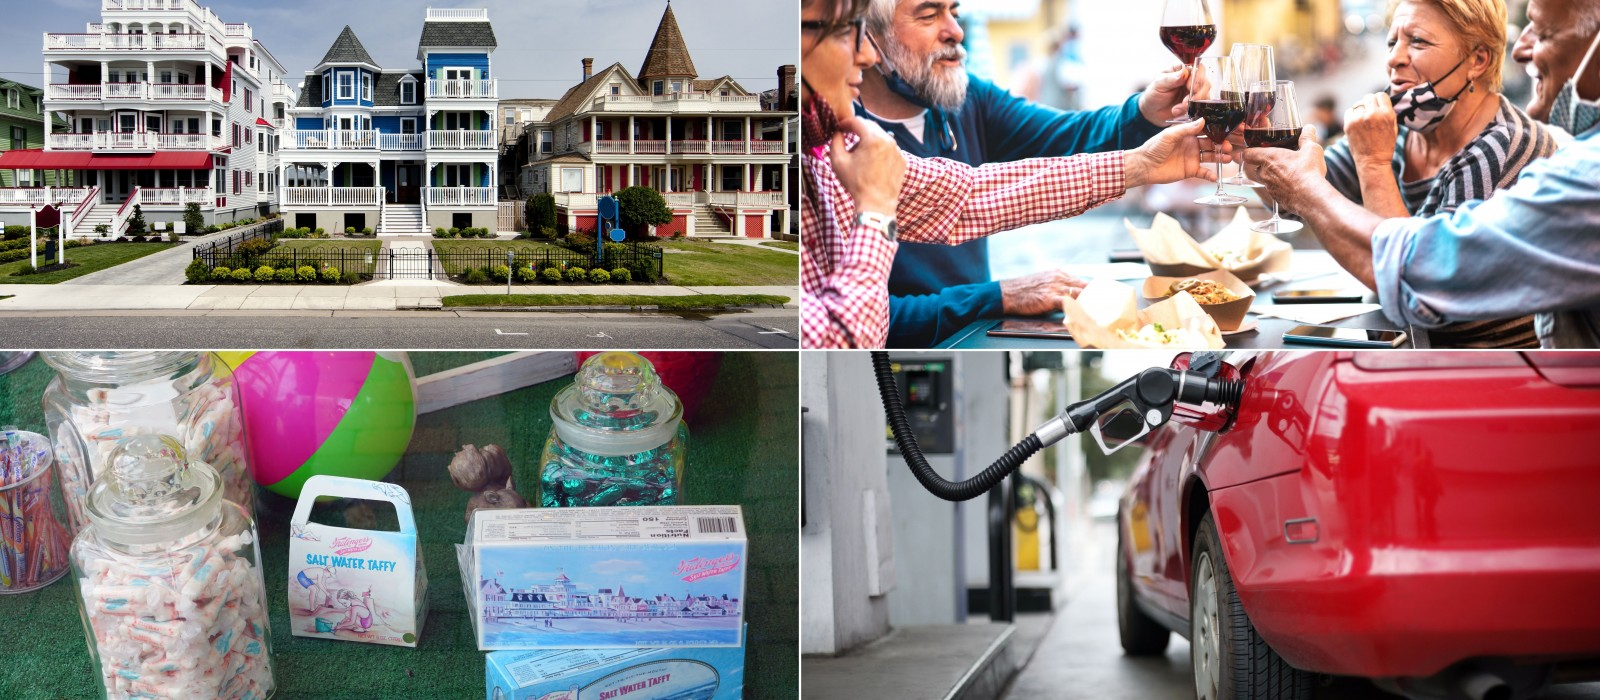 4 shutterstock images depicting ways passengers spend $ locally